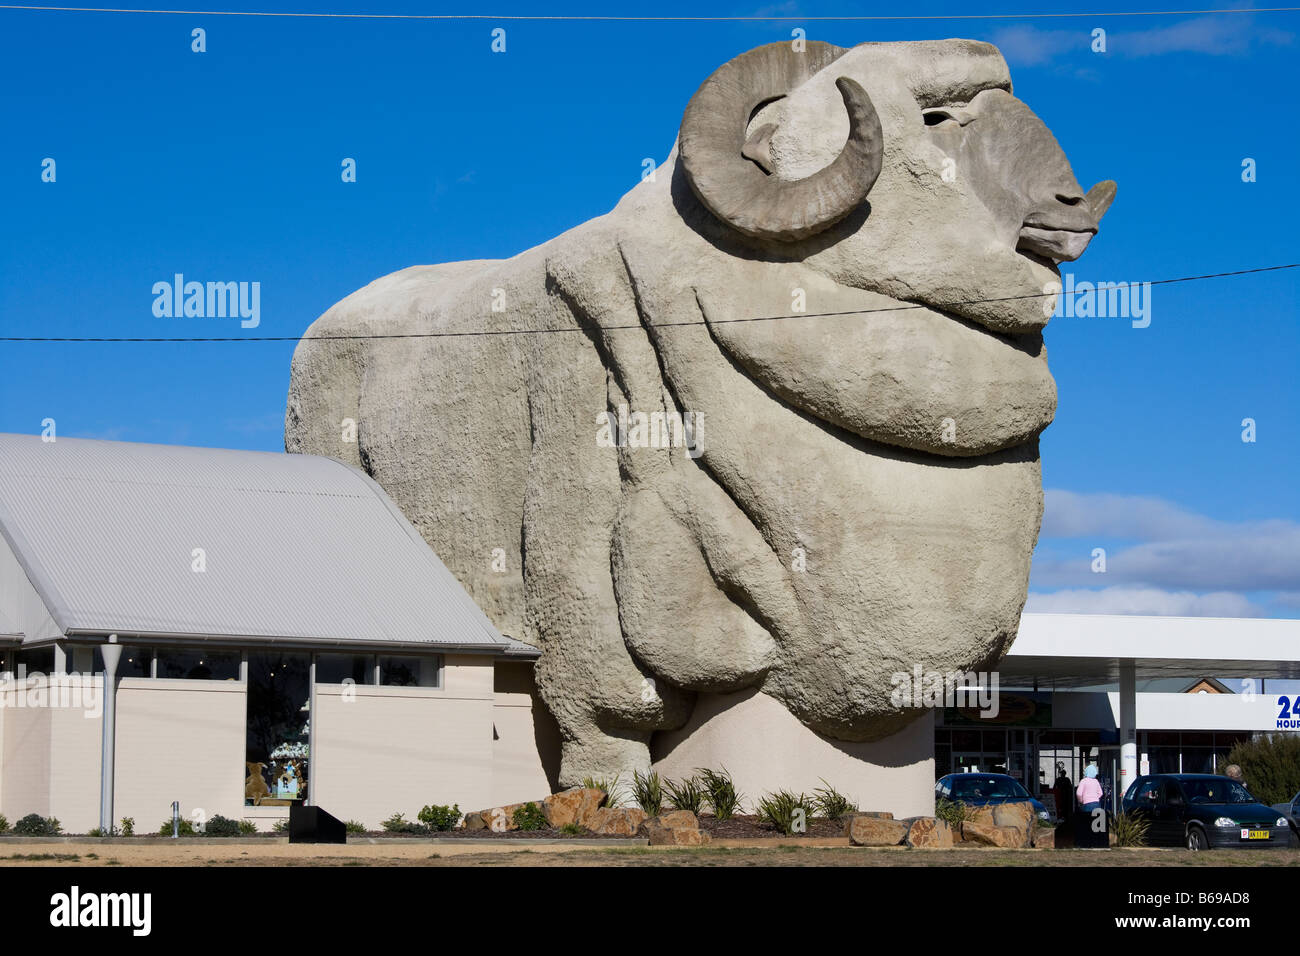 The Big Merino in Goulburn Australia. The worlds biggest Merino sheep statue at 15.2 meters, 97t. - Stock Image